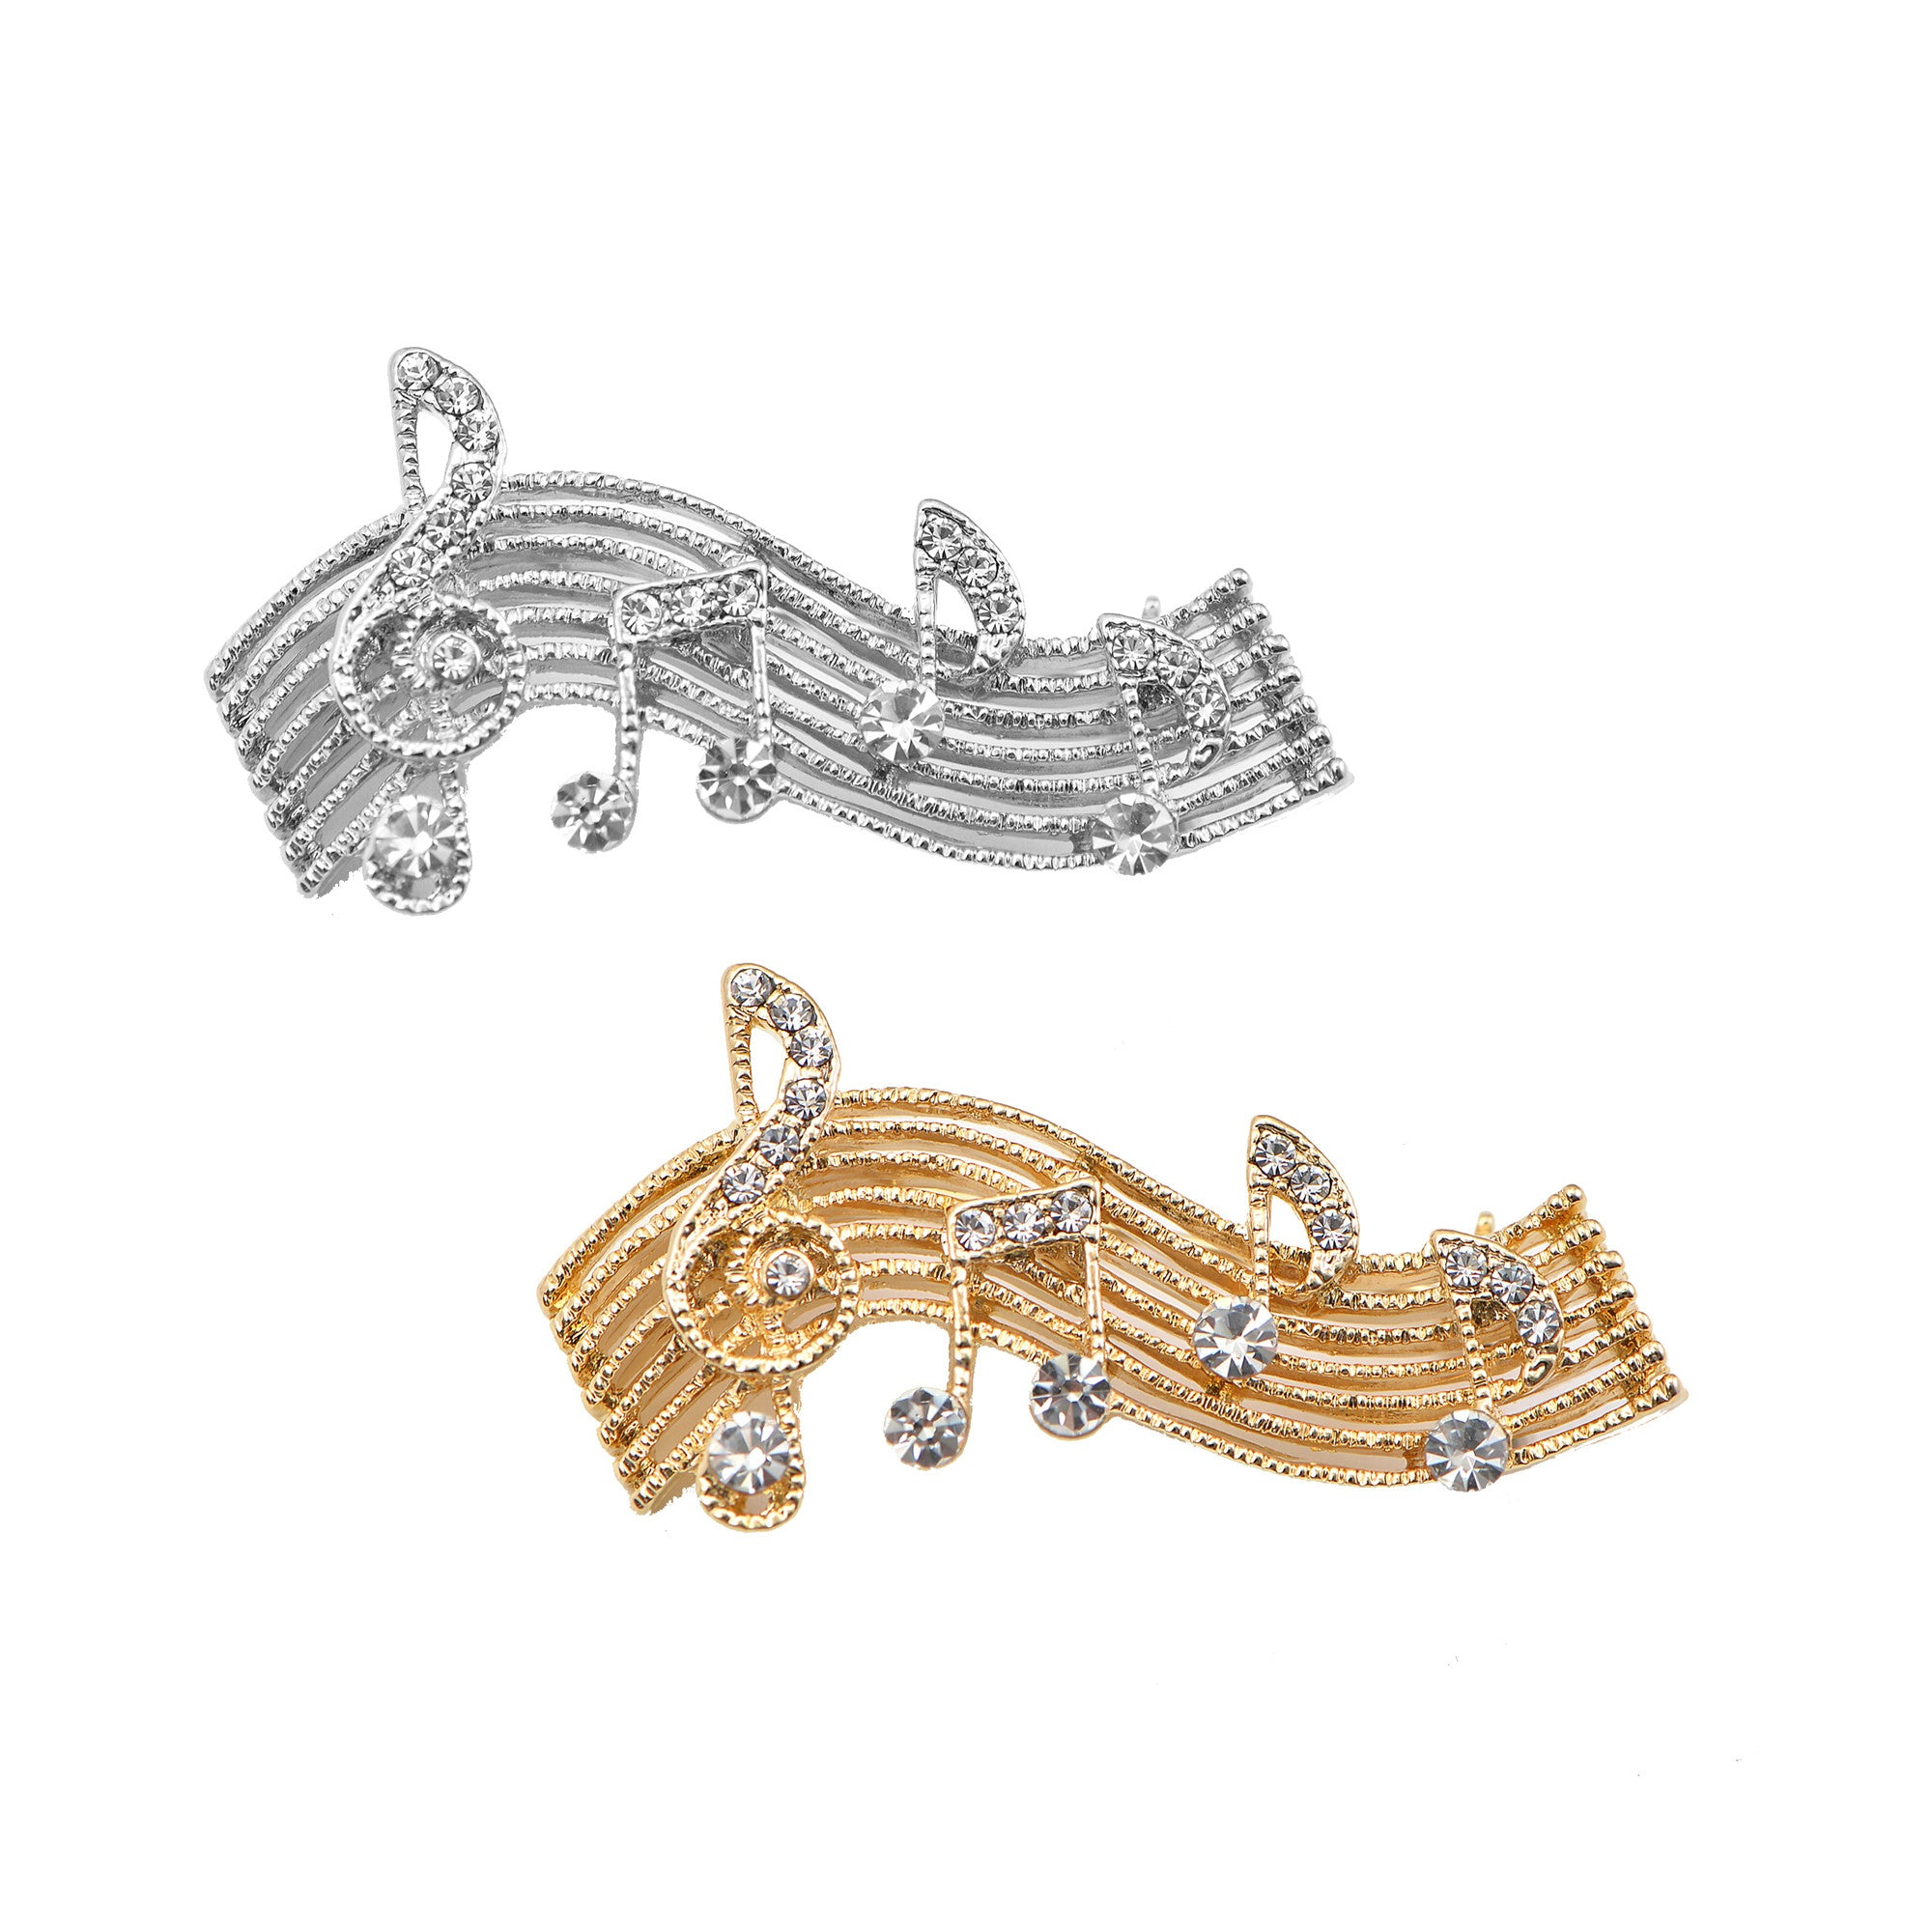 Marvelous Tiny Jewel Crystal Music Note Melody Brooch Pin   Spinningdaisy ...